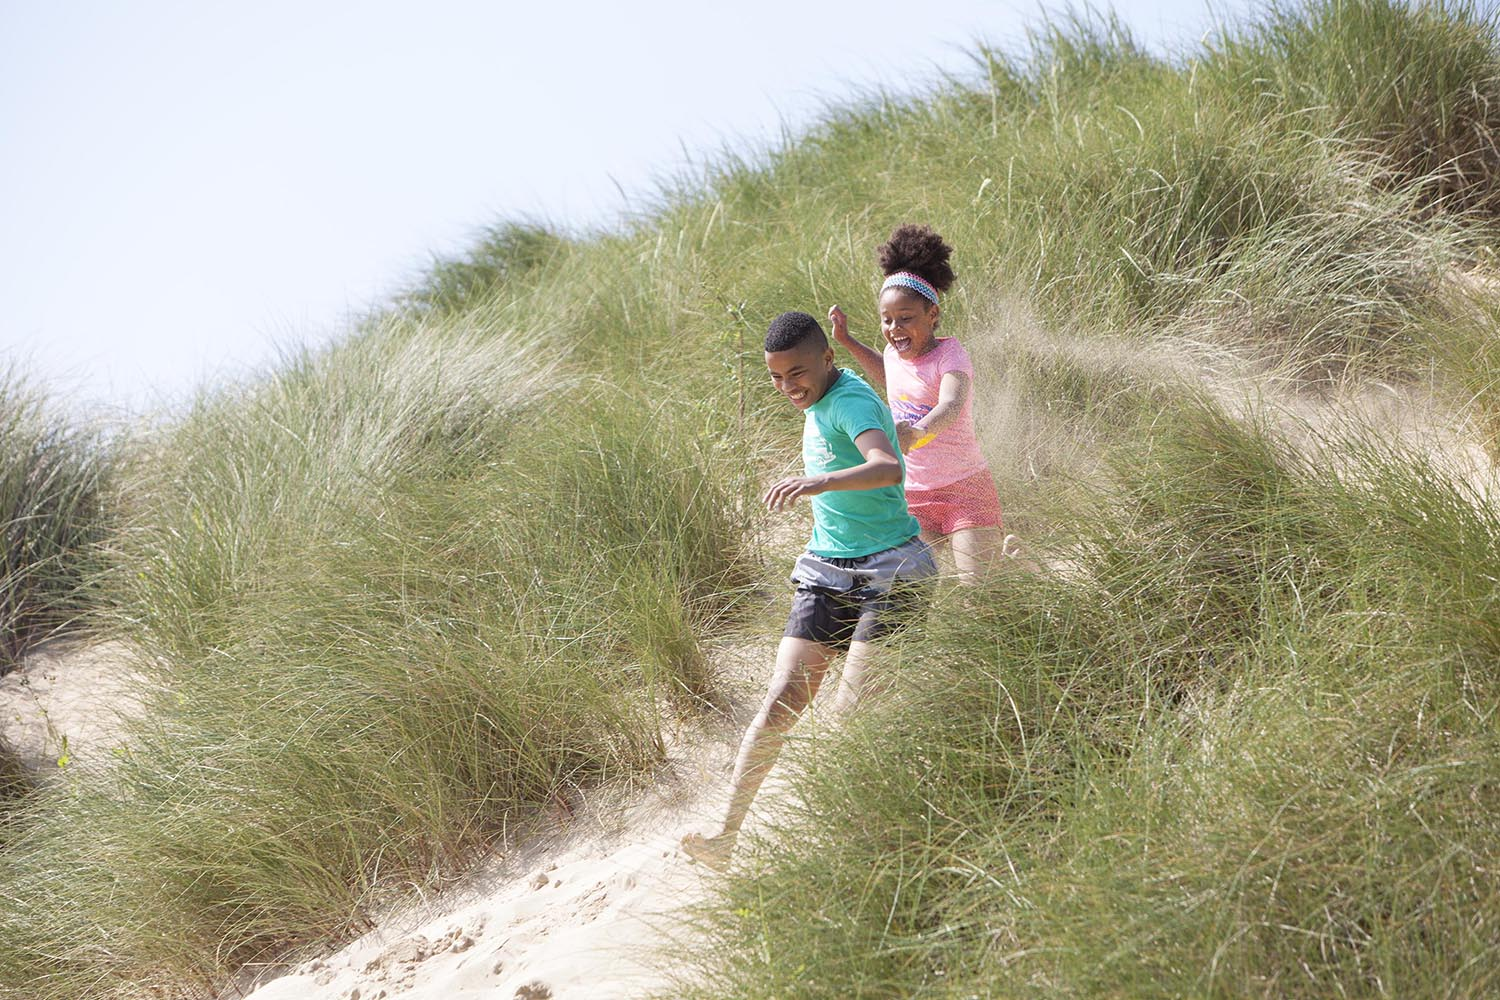 Two children playing on the sand dunes in Cornwall